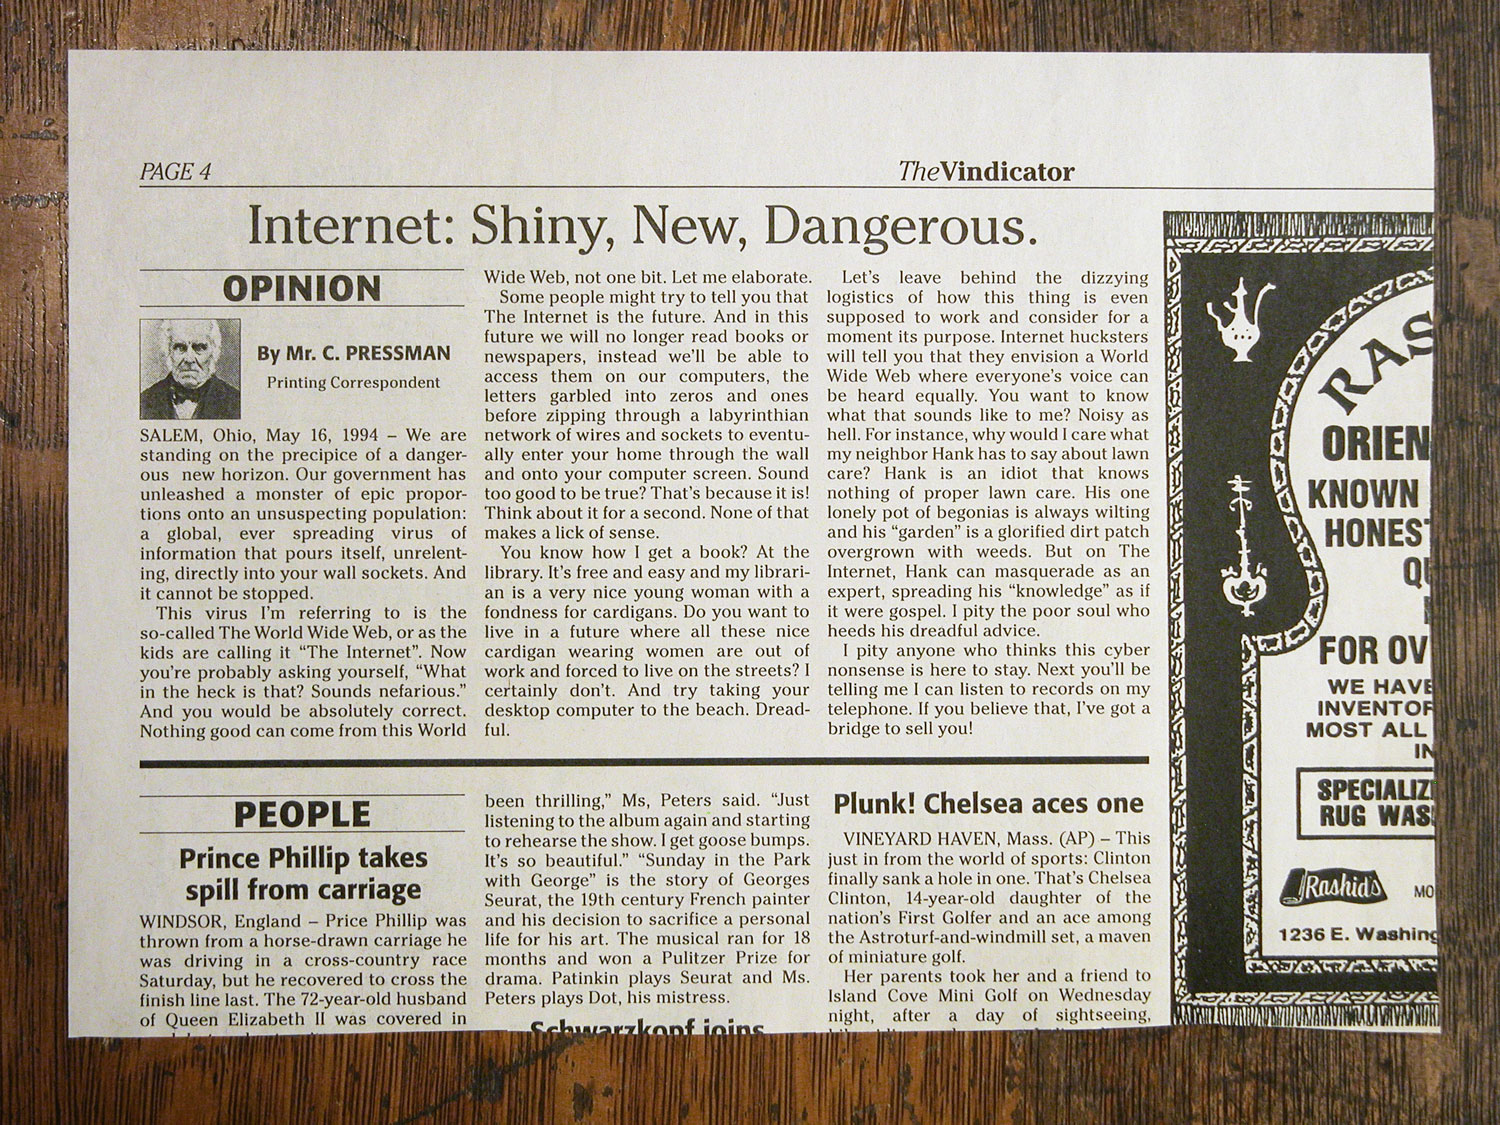 cranky-internet-newspaper-article.jpg